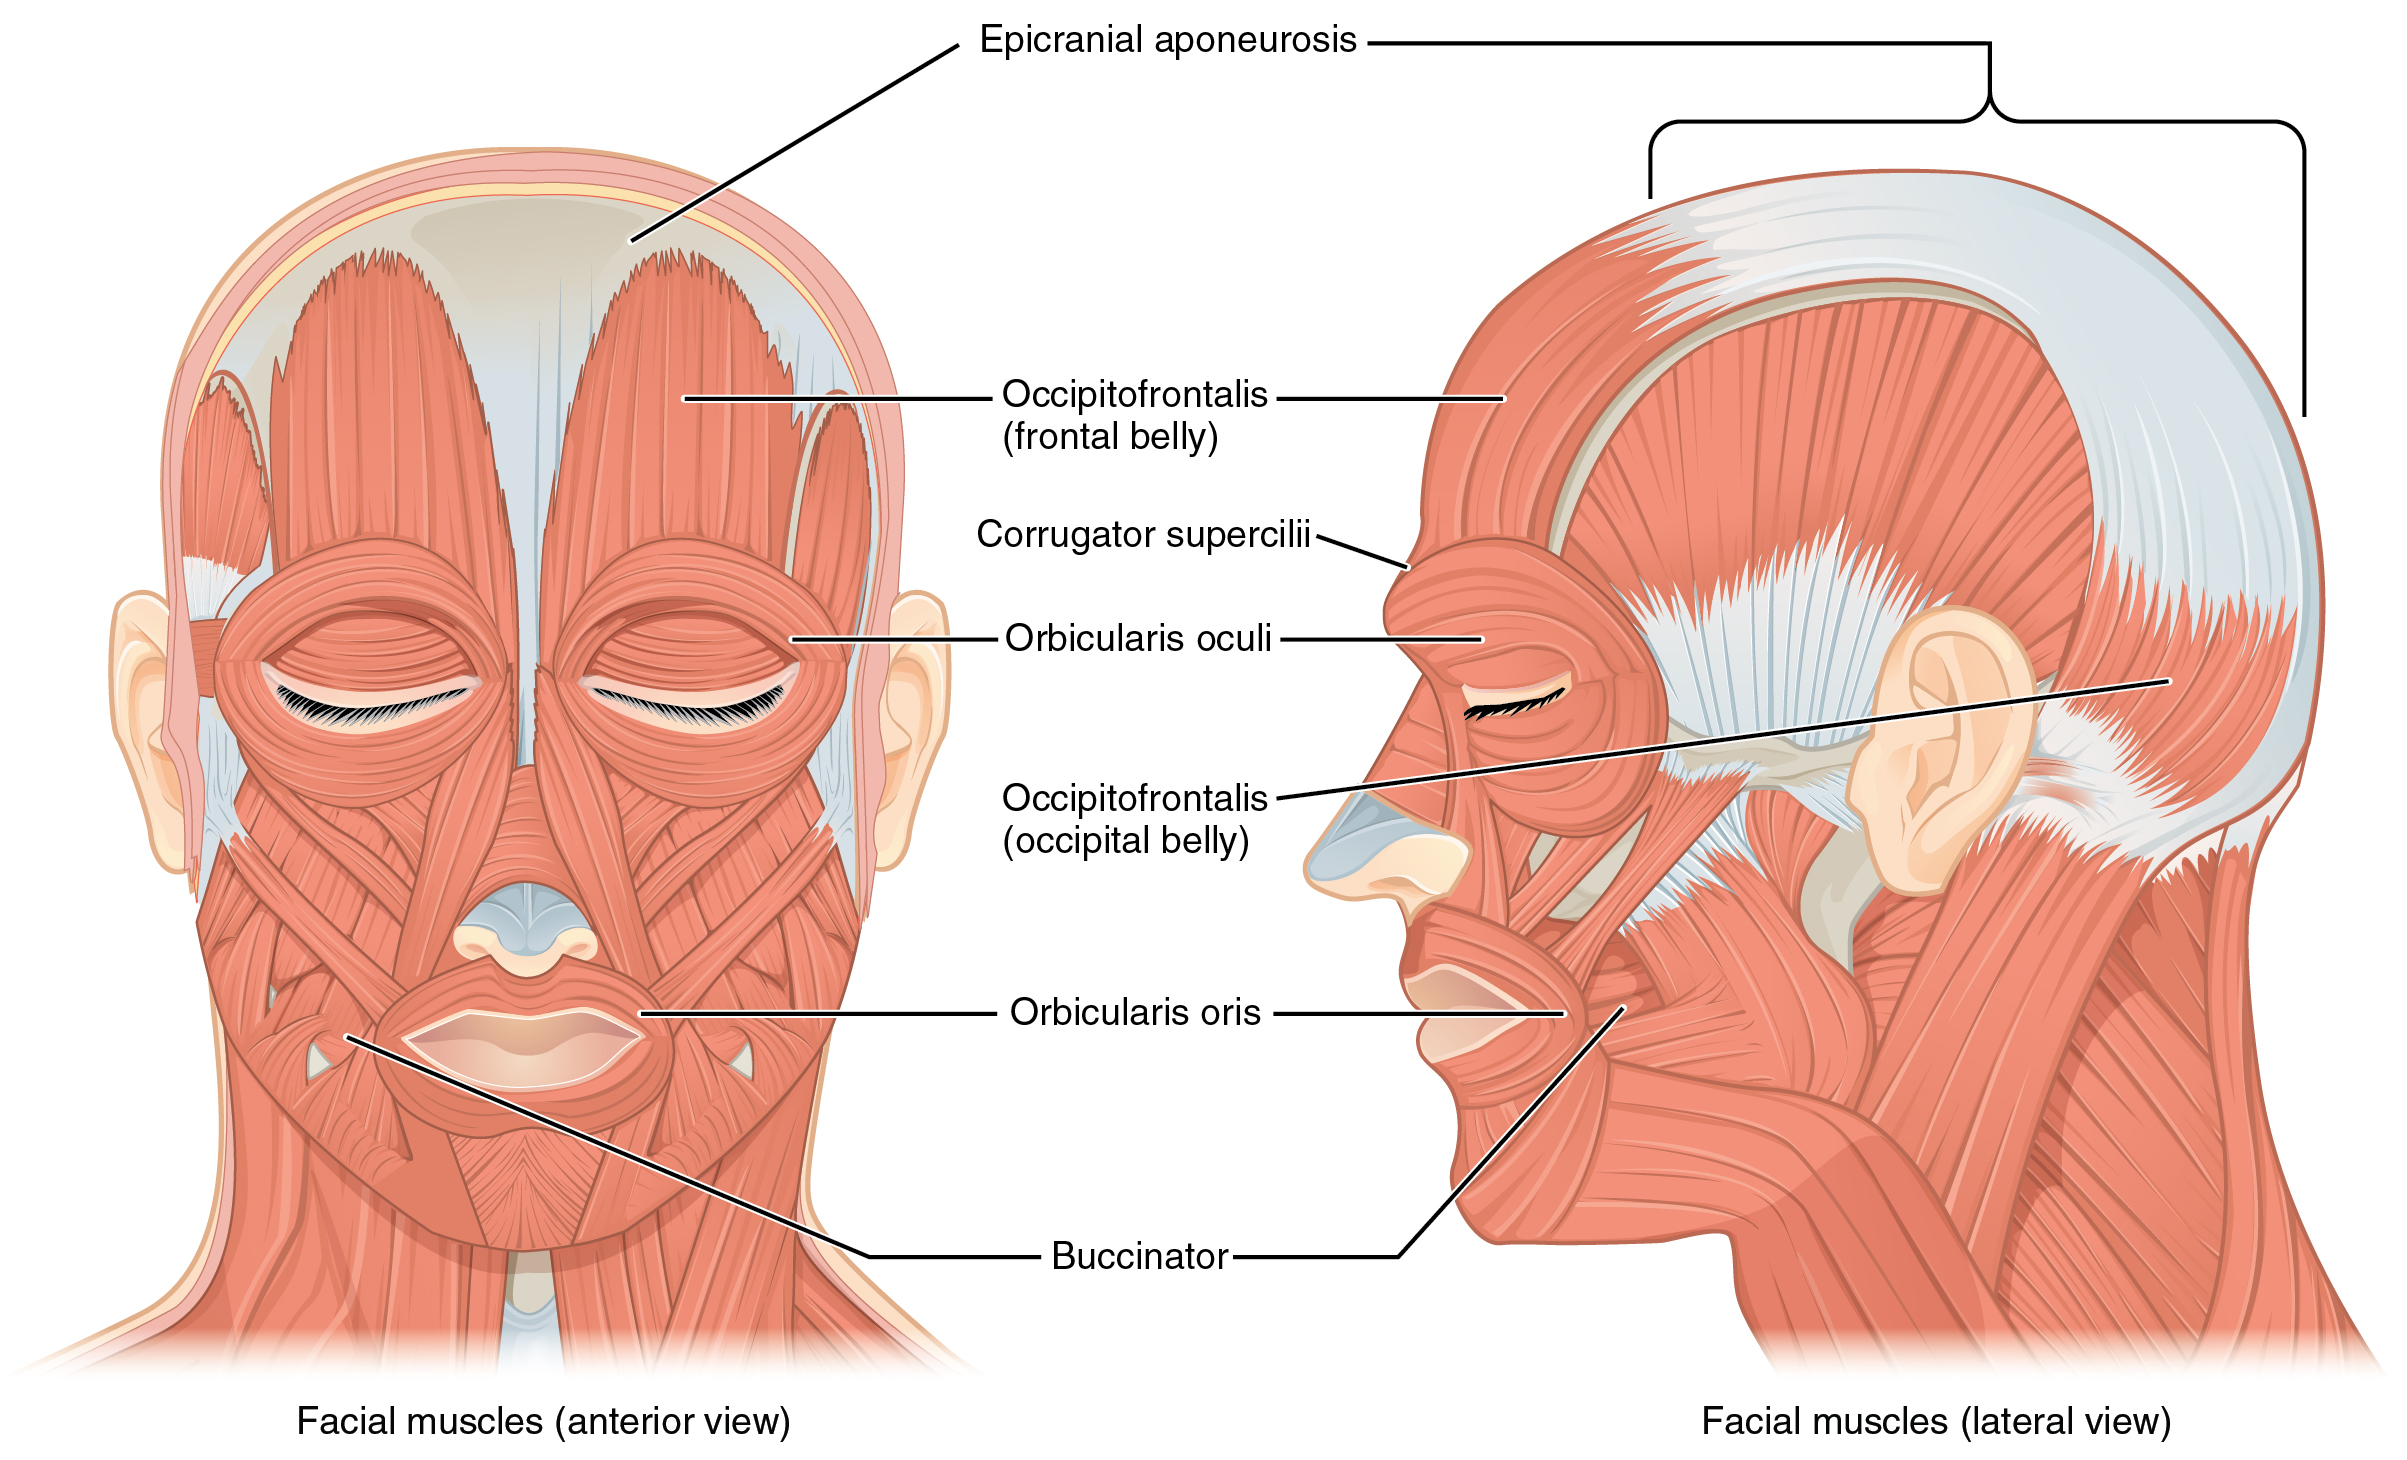 The Left Panel In This Figure Shows The Anterior View Of The Facial Muscles And The Right Panel